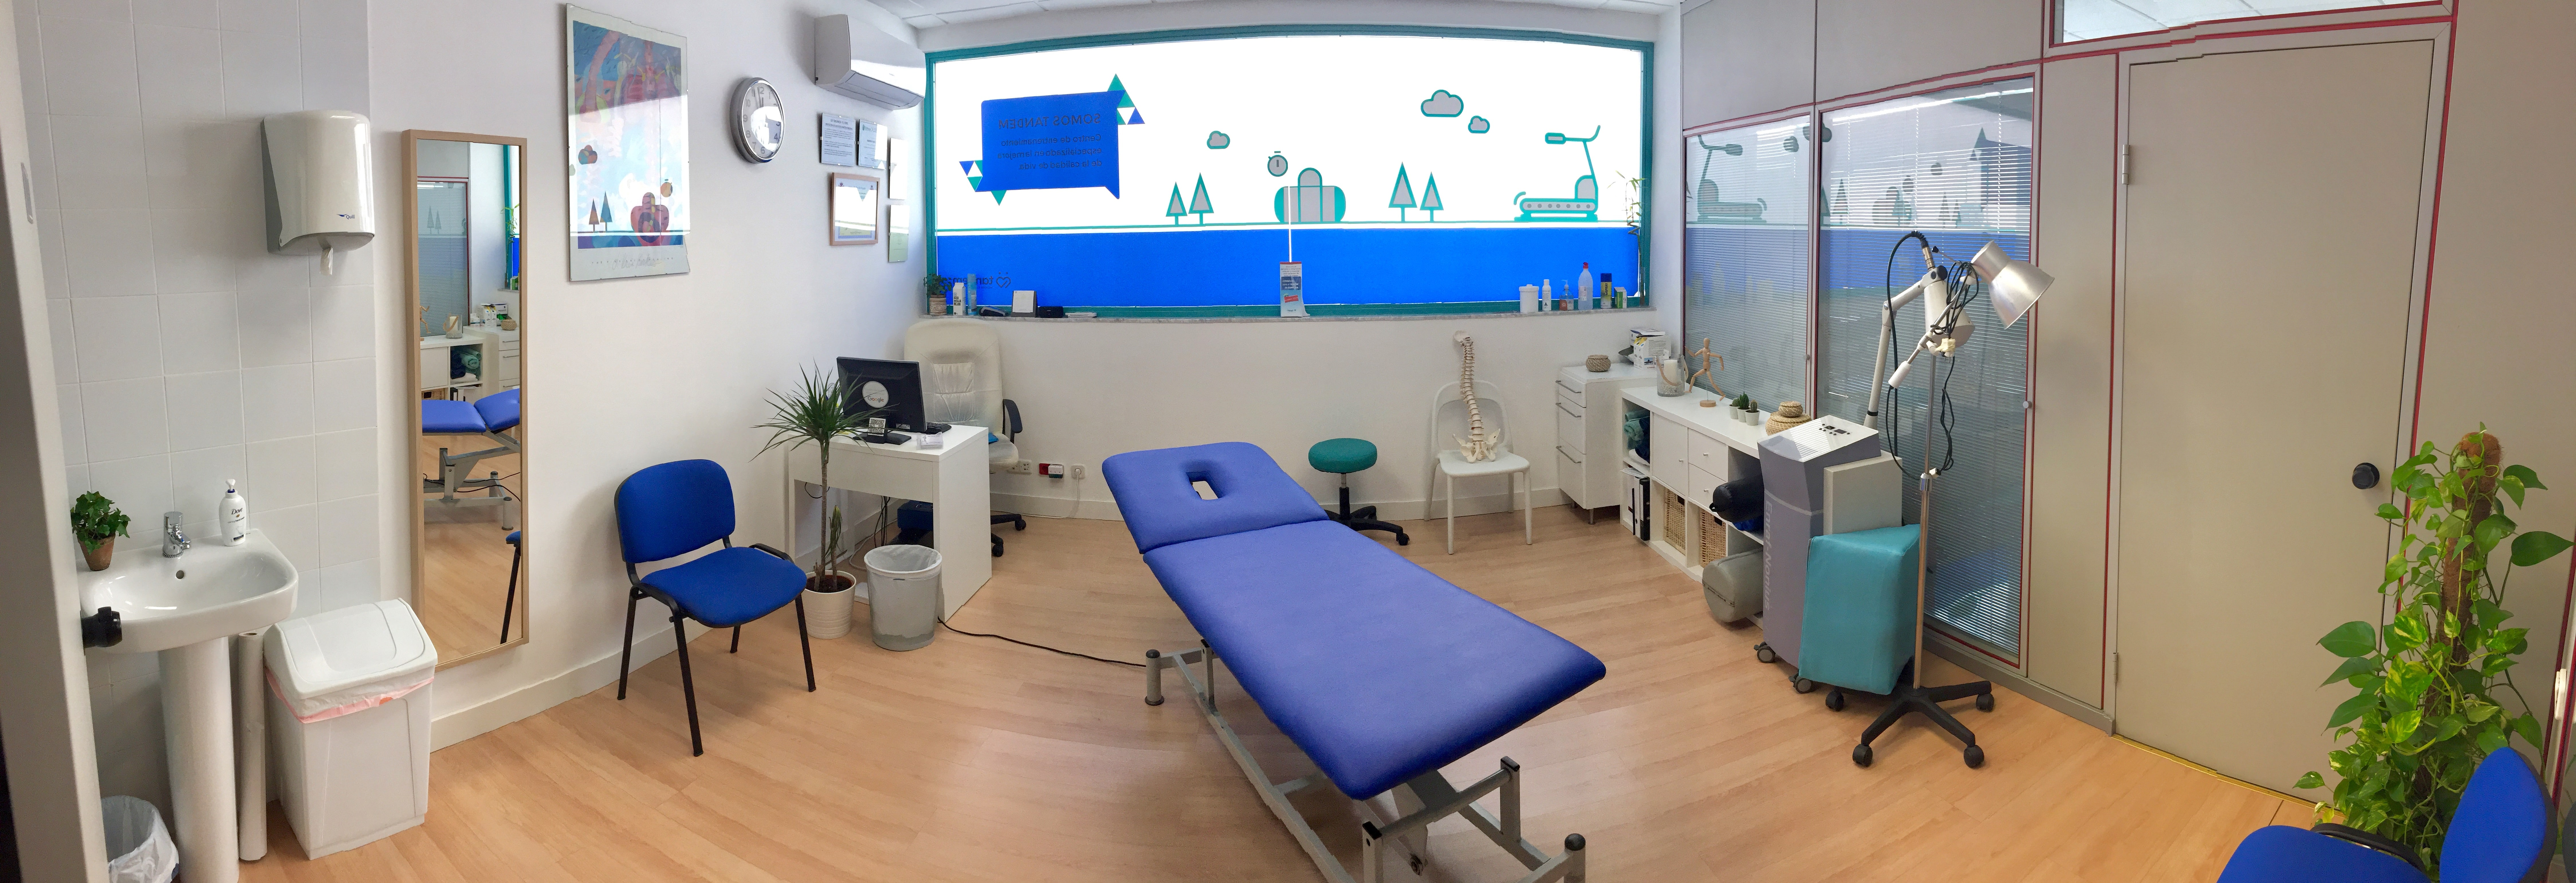 Clínica de Fisioterapia | Madrid | Fisiotherapy Madrid